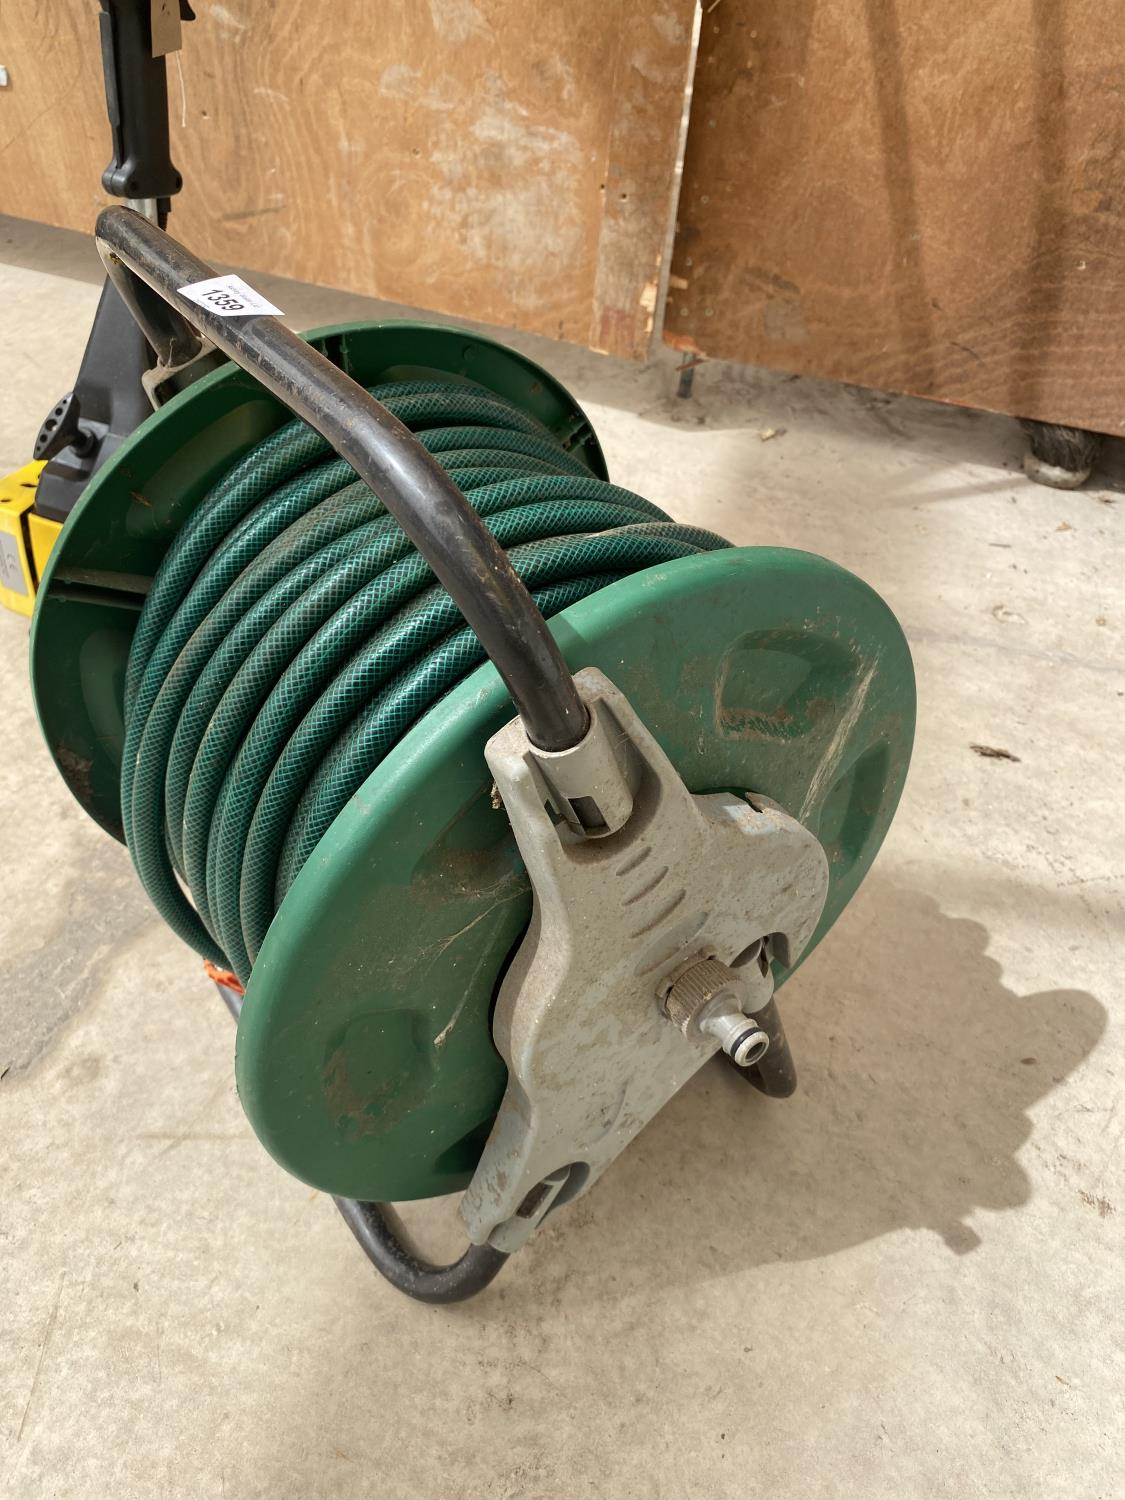 TWO GARDEN RAKES AND A HOSE REEL - Image 2 of 3